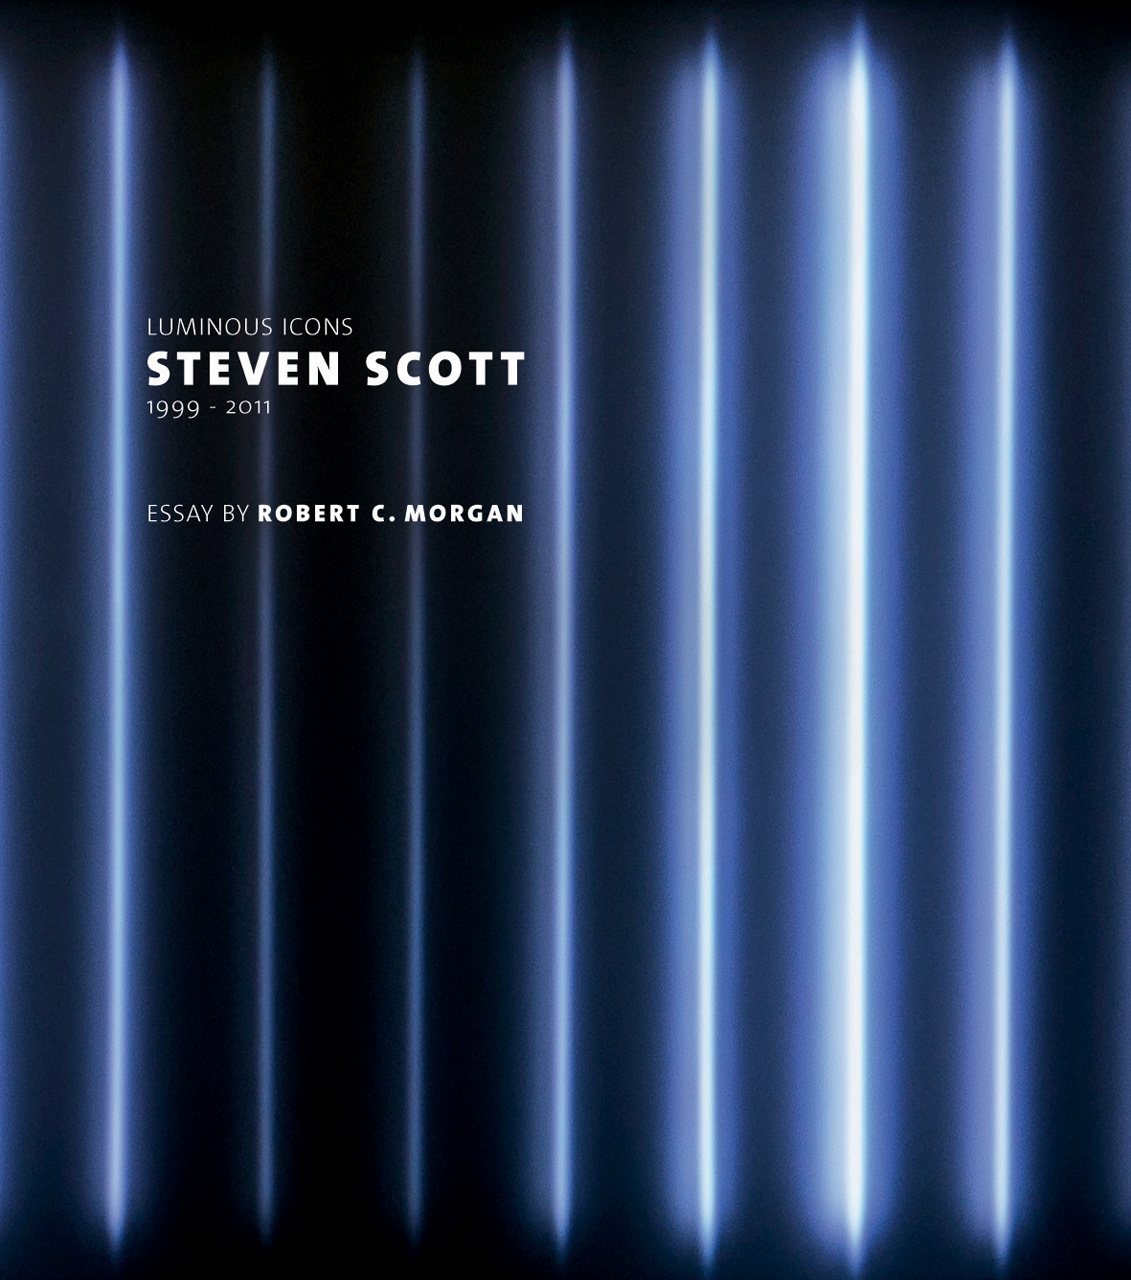 Steven Scott: Luminous Icons 1999 - 2011